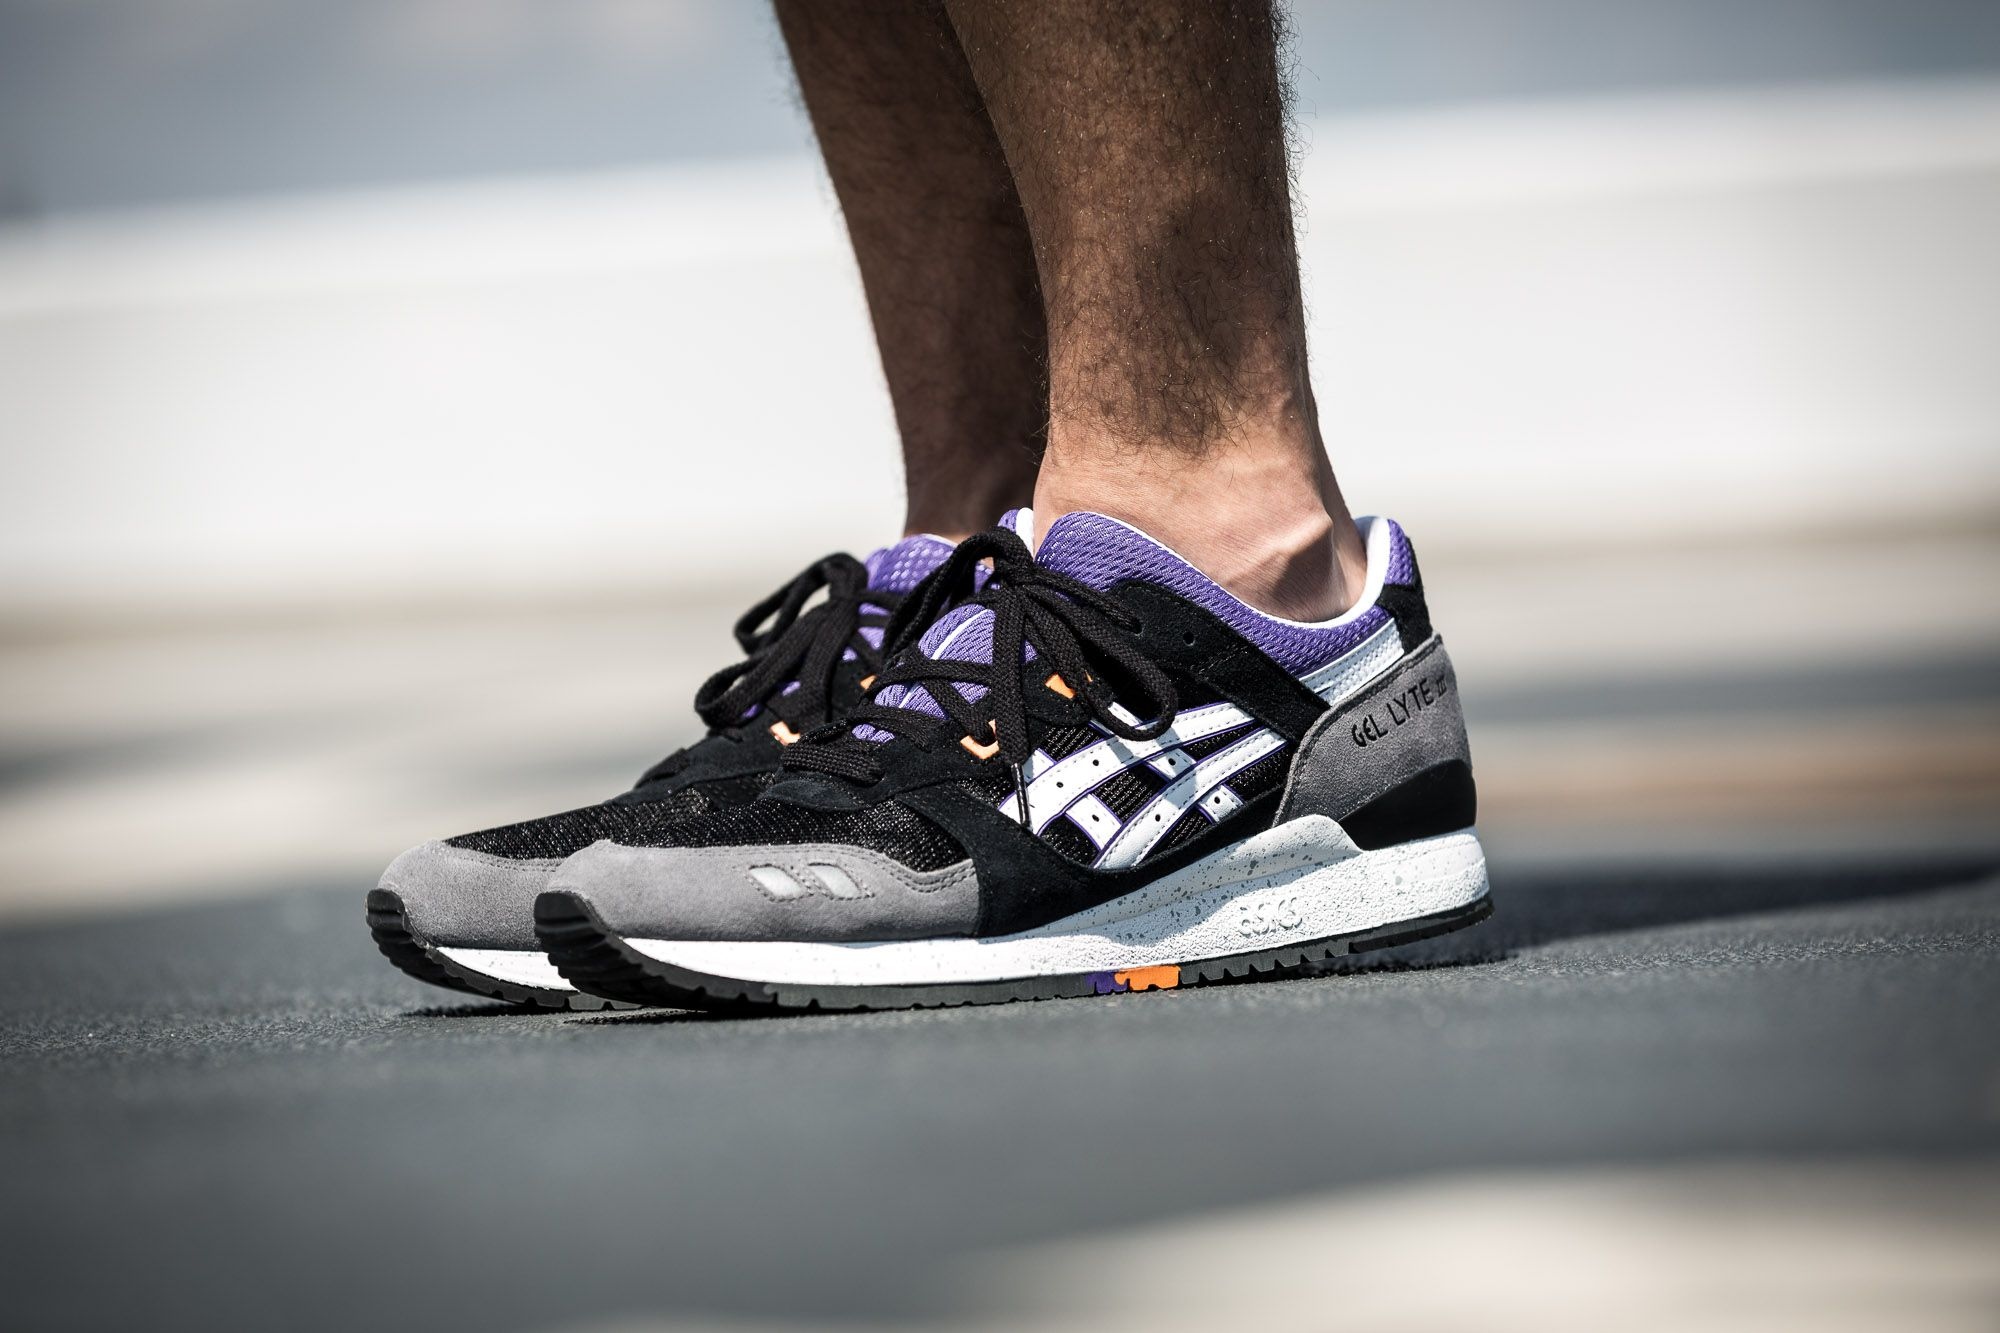 d82e7ebbd319 Asics Gel Lyte III Black Grey-Purple